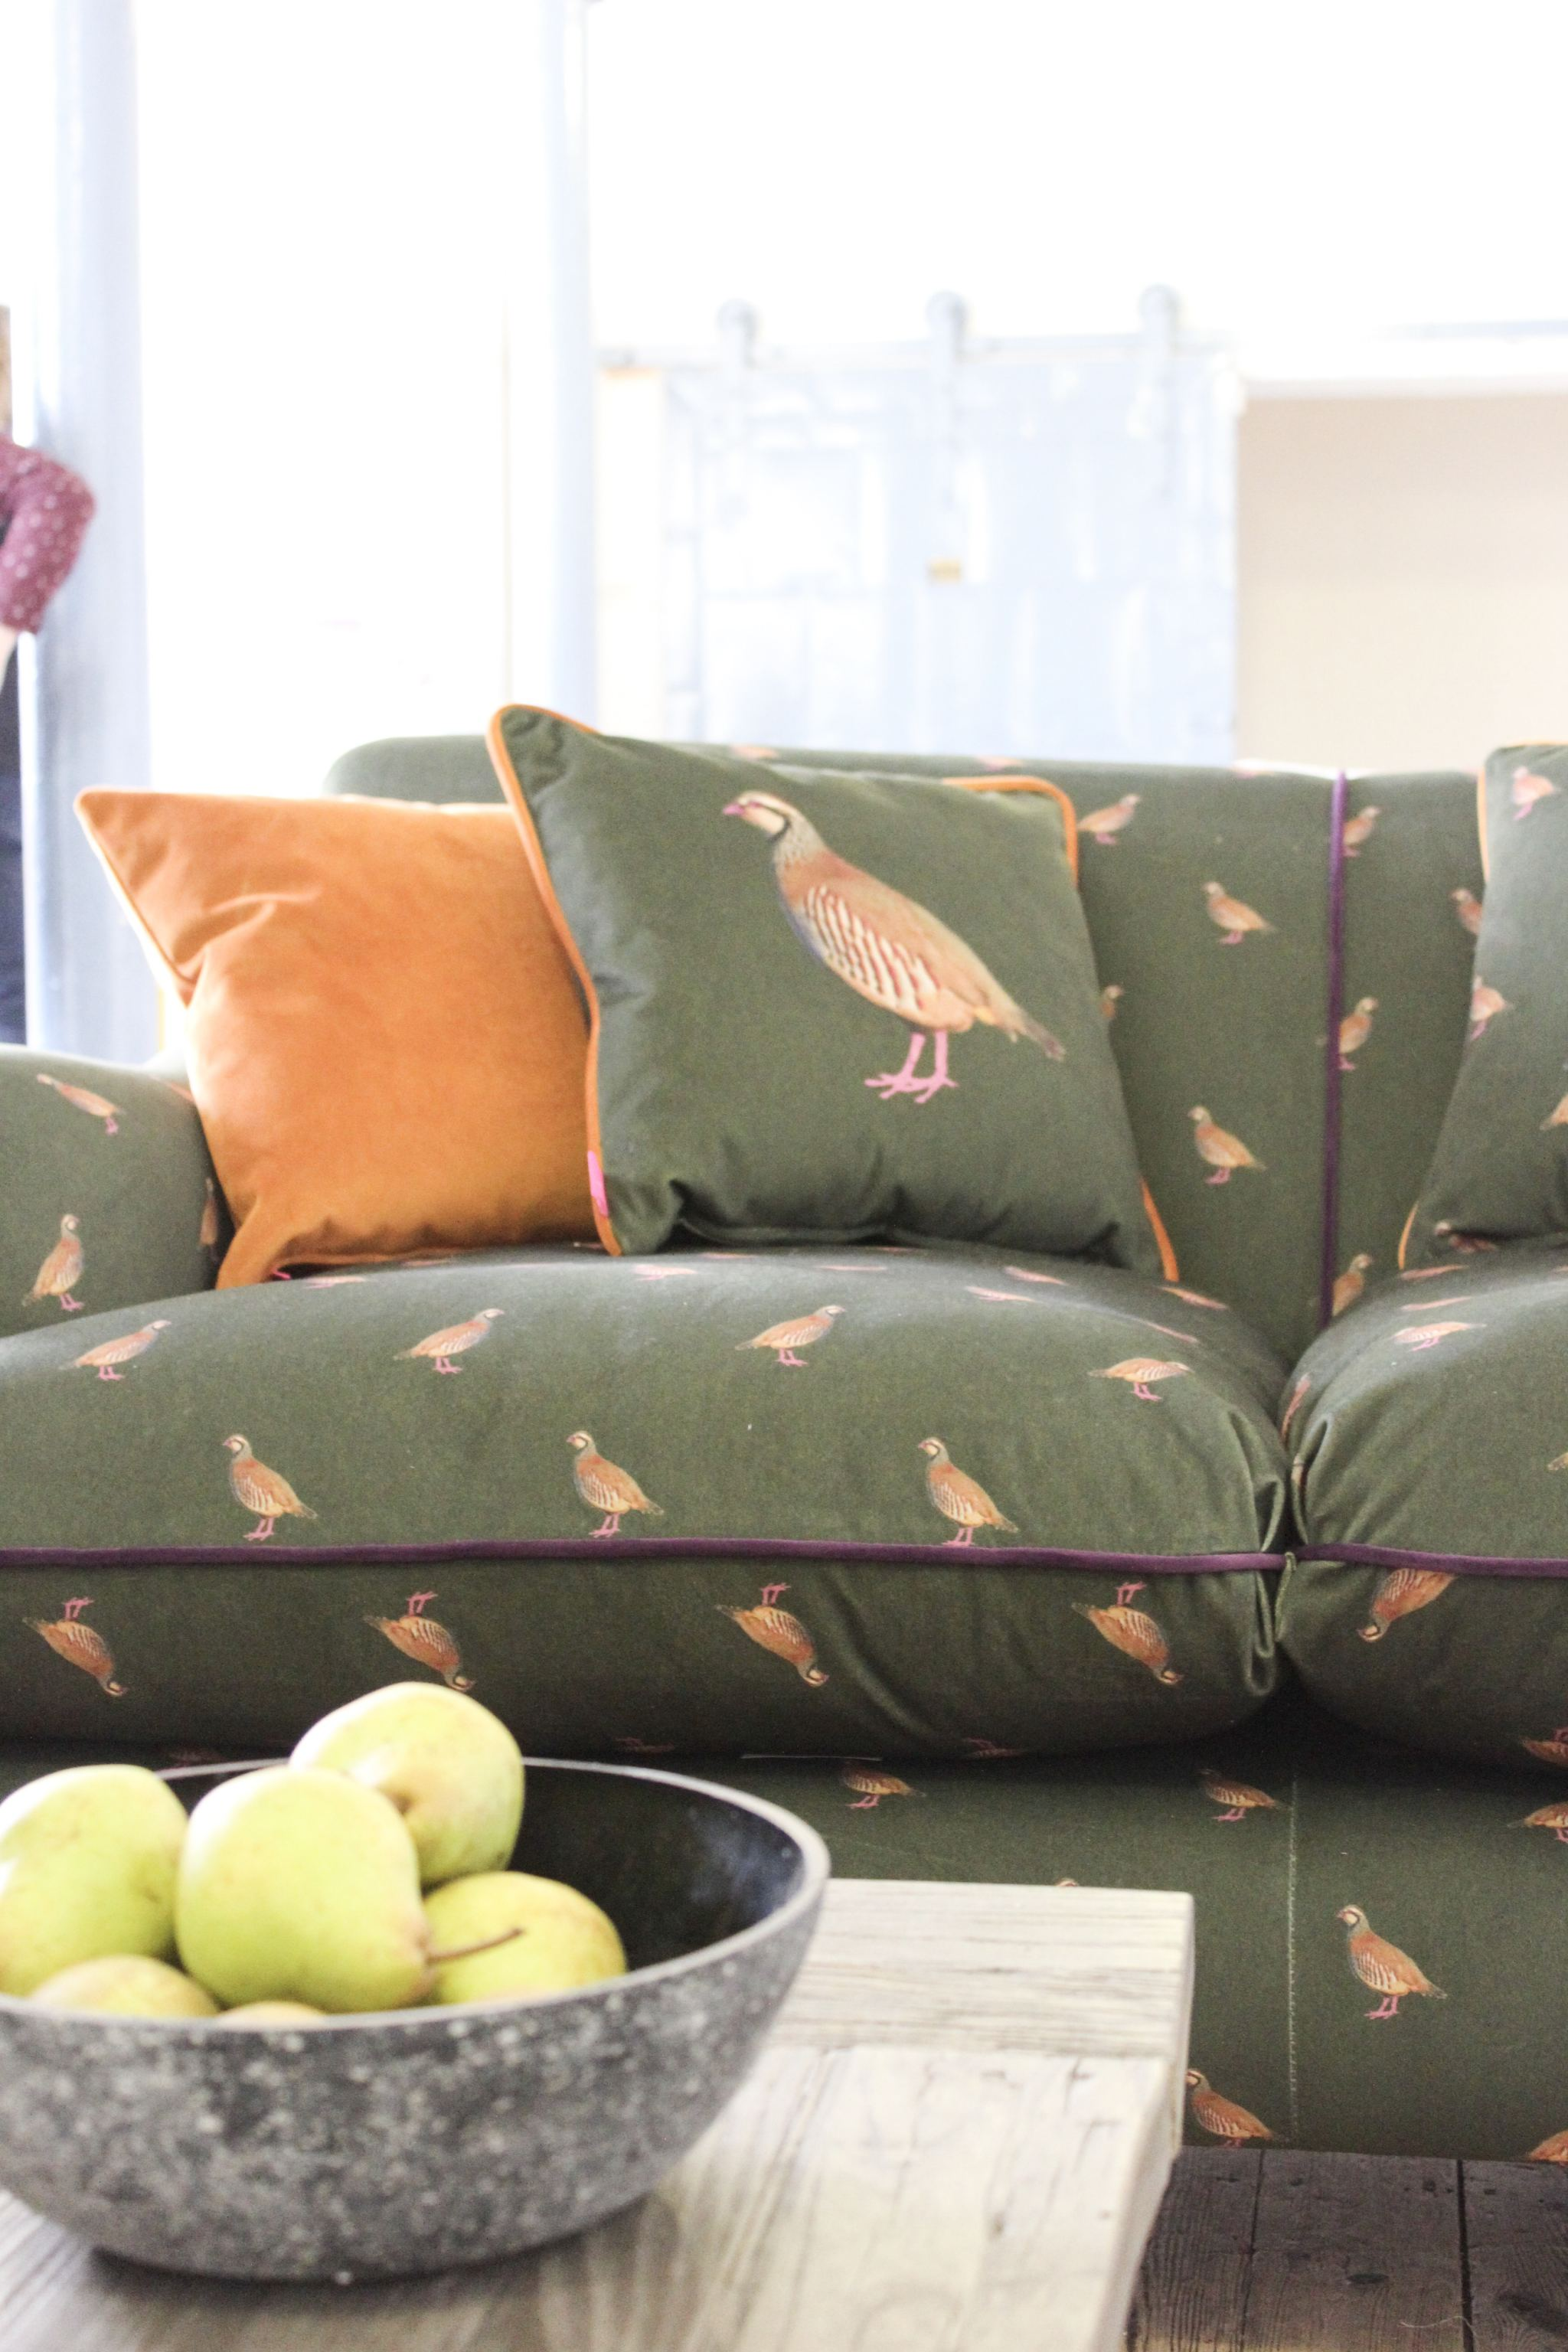 Astonishing Joules Dfs Collection Within These Walls Andrewgaddart Wooden Chair Designs For Living Room Andrewgaddartcom